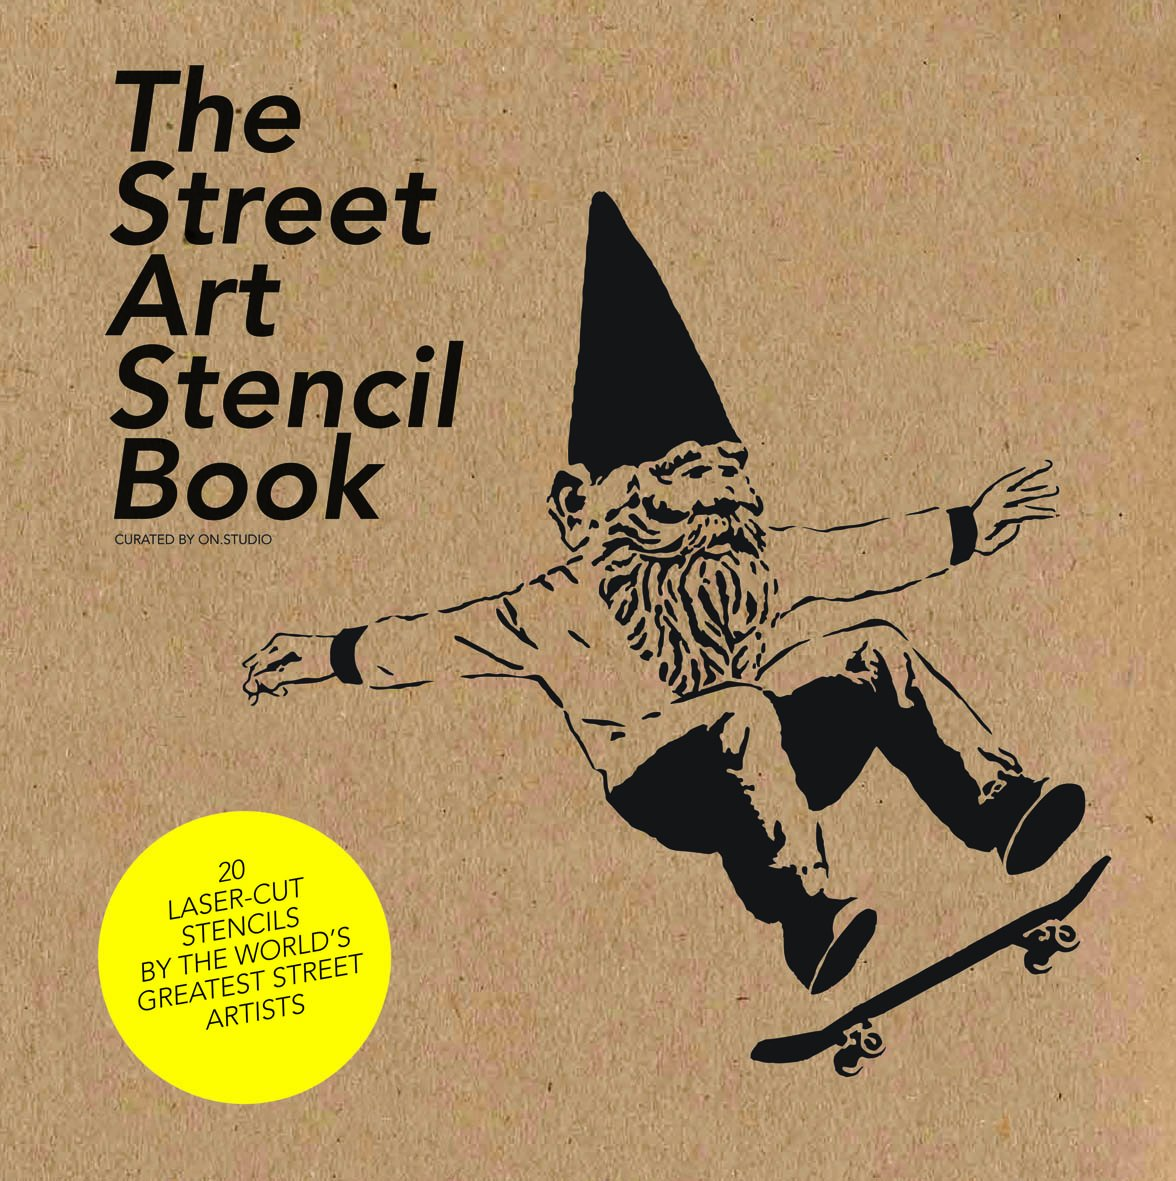 Stencil Graffiti Book